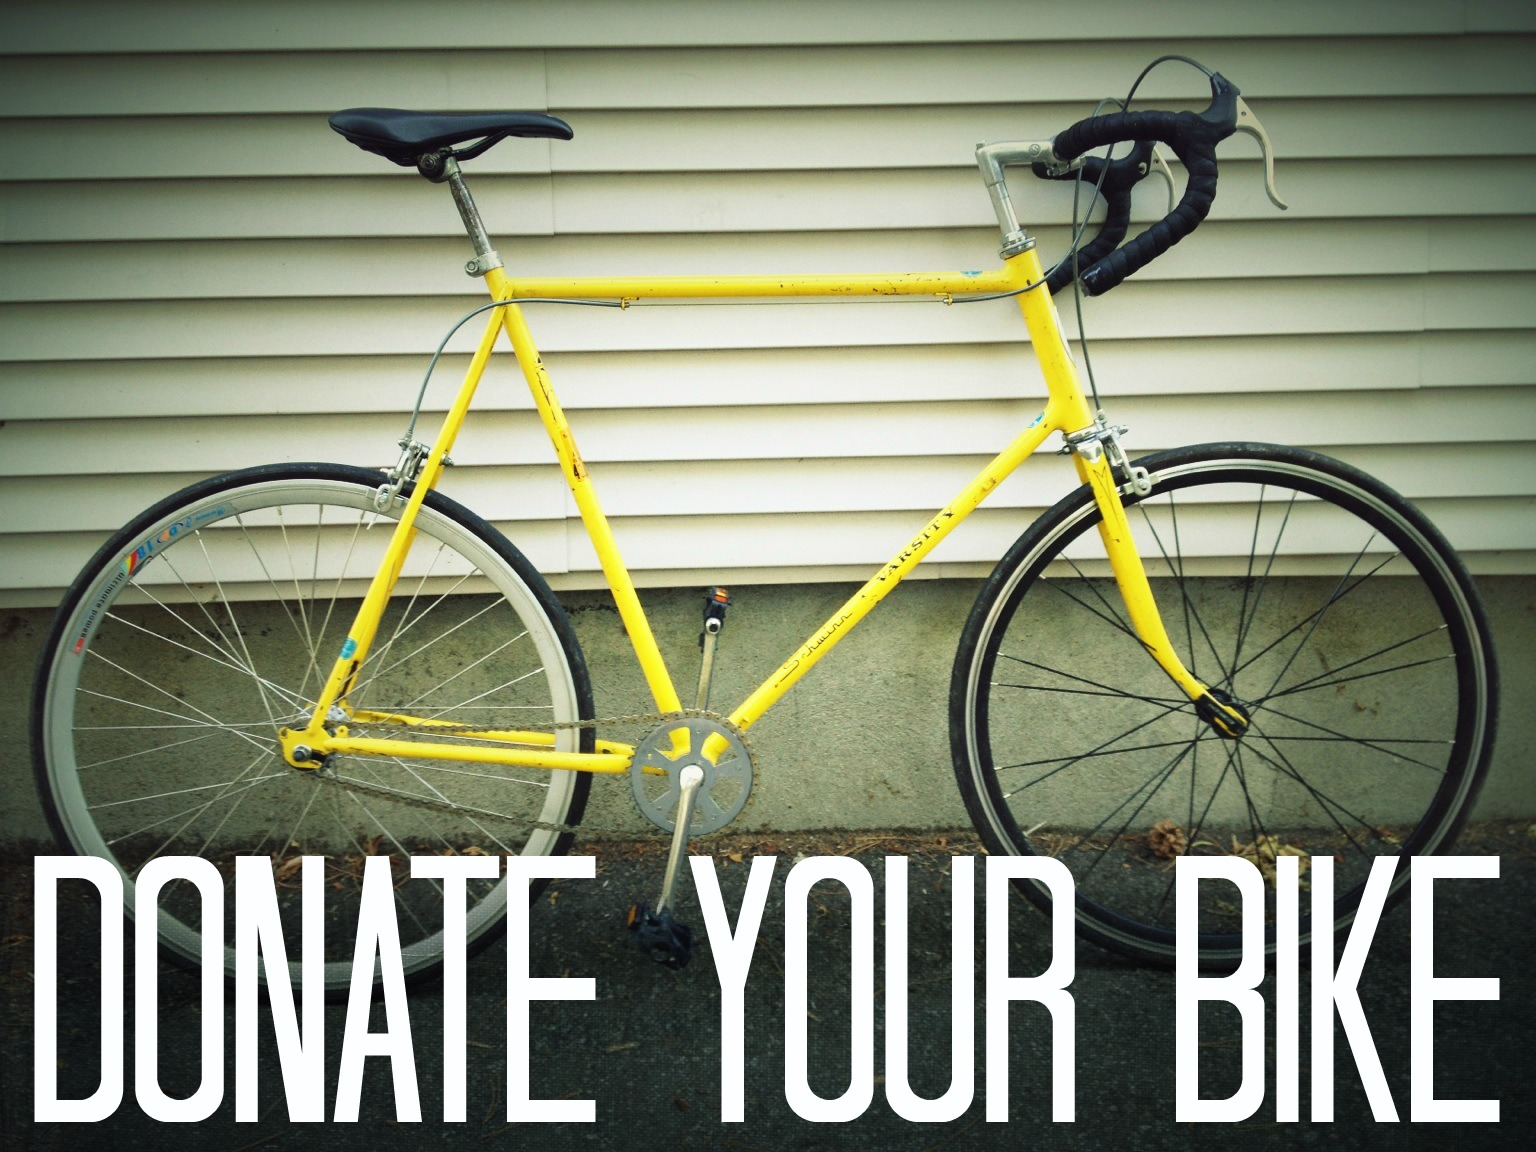 Bike Pirates need you to donate your unused bicycles and bike parts. We accept all form of bike donations. As a non profit, bike pirates relyies on bike donations to keep our doors open and keep true to our mission mandate to provide accessible transportation.  Please donate today.